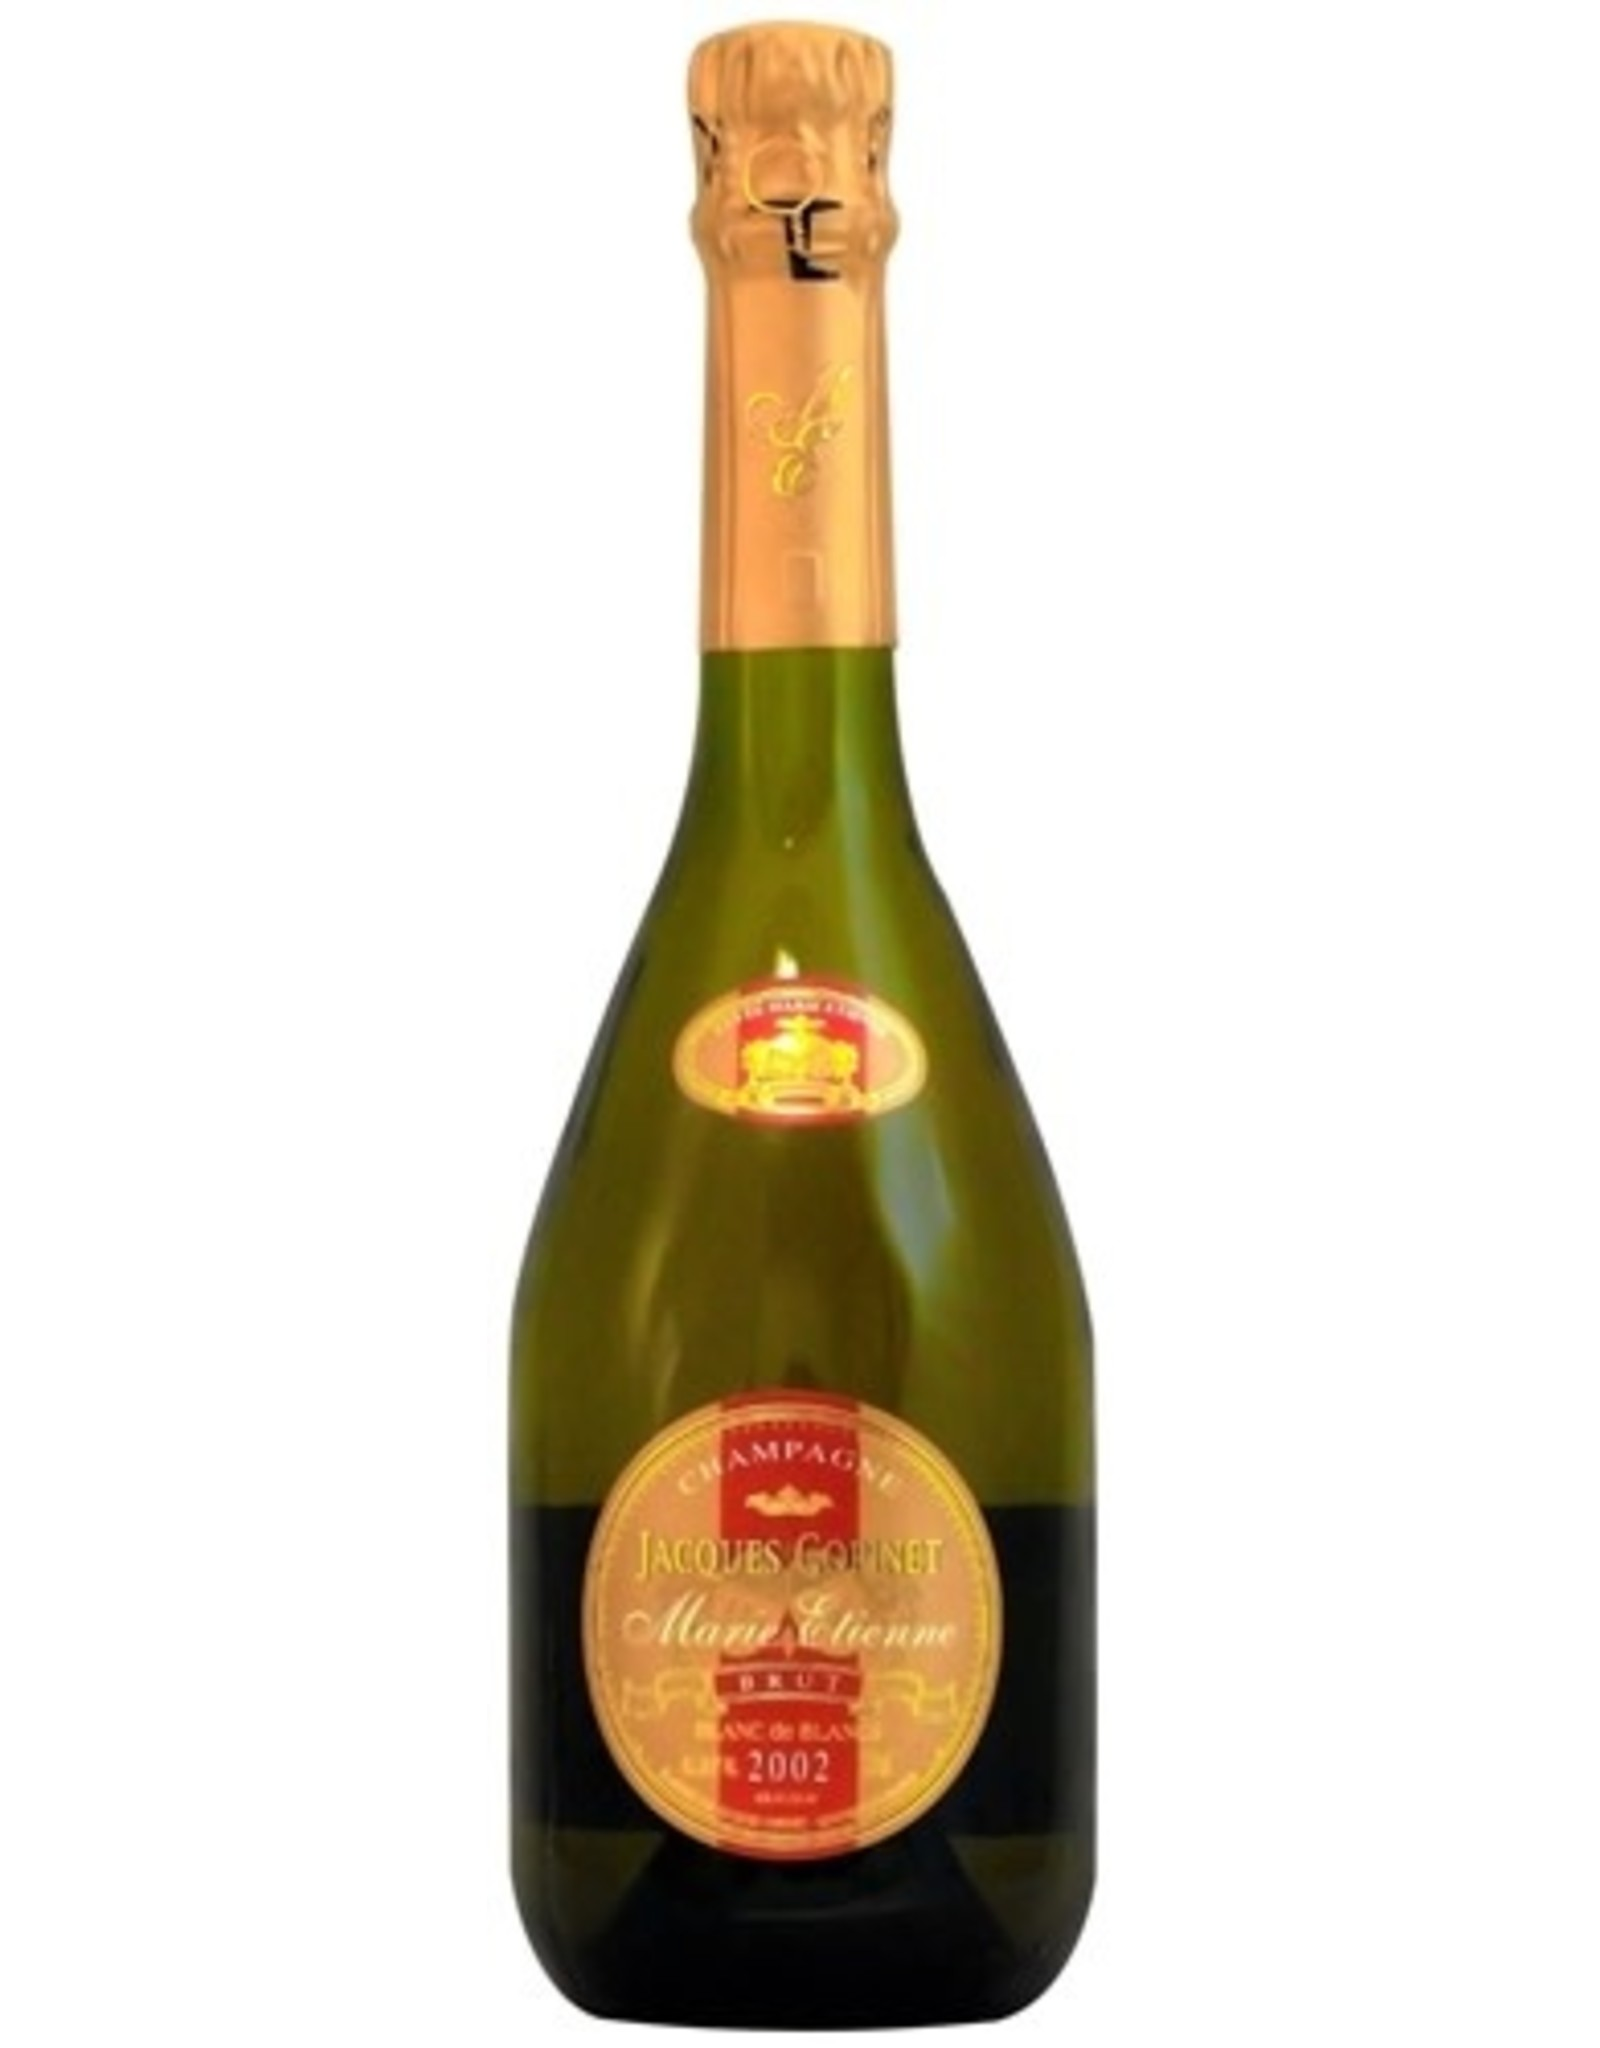 JACQUES COPINET MARRIE ETIENNE NV 750ML